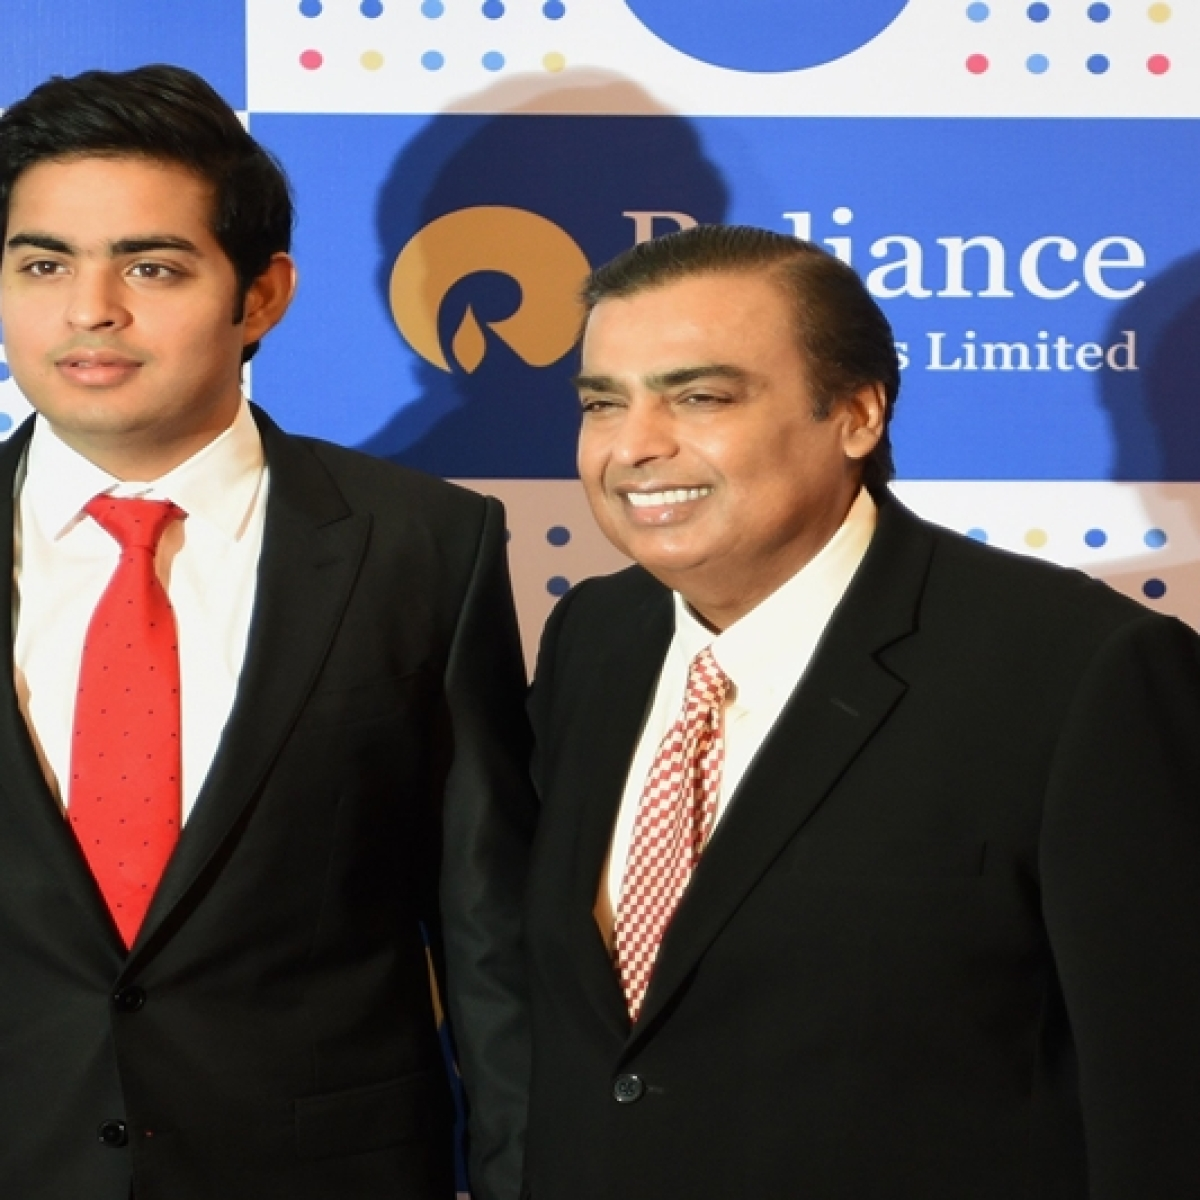 Reliance denies selling Network18 to Times Group, says reports false, baseless